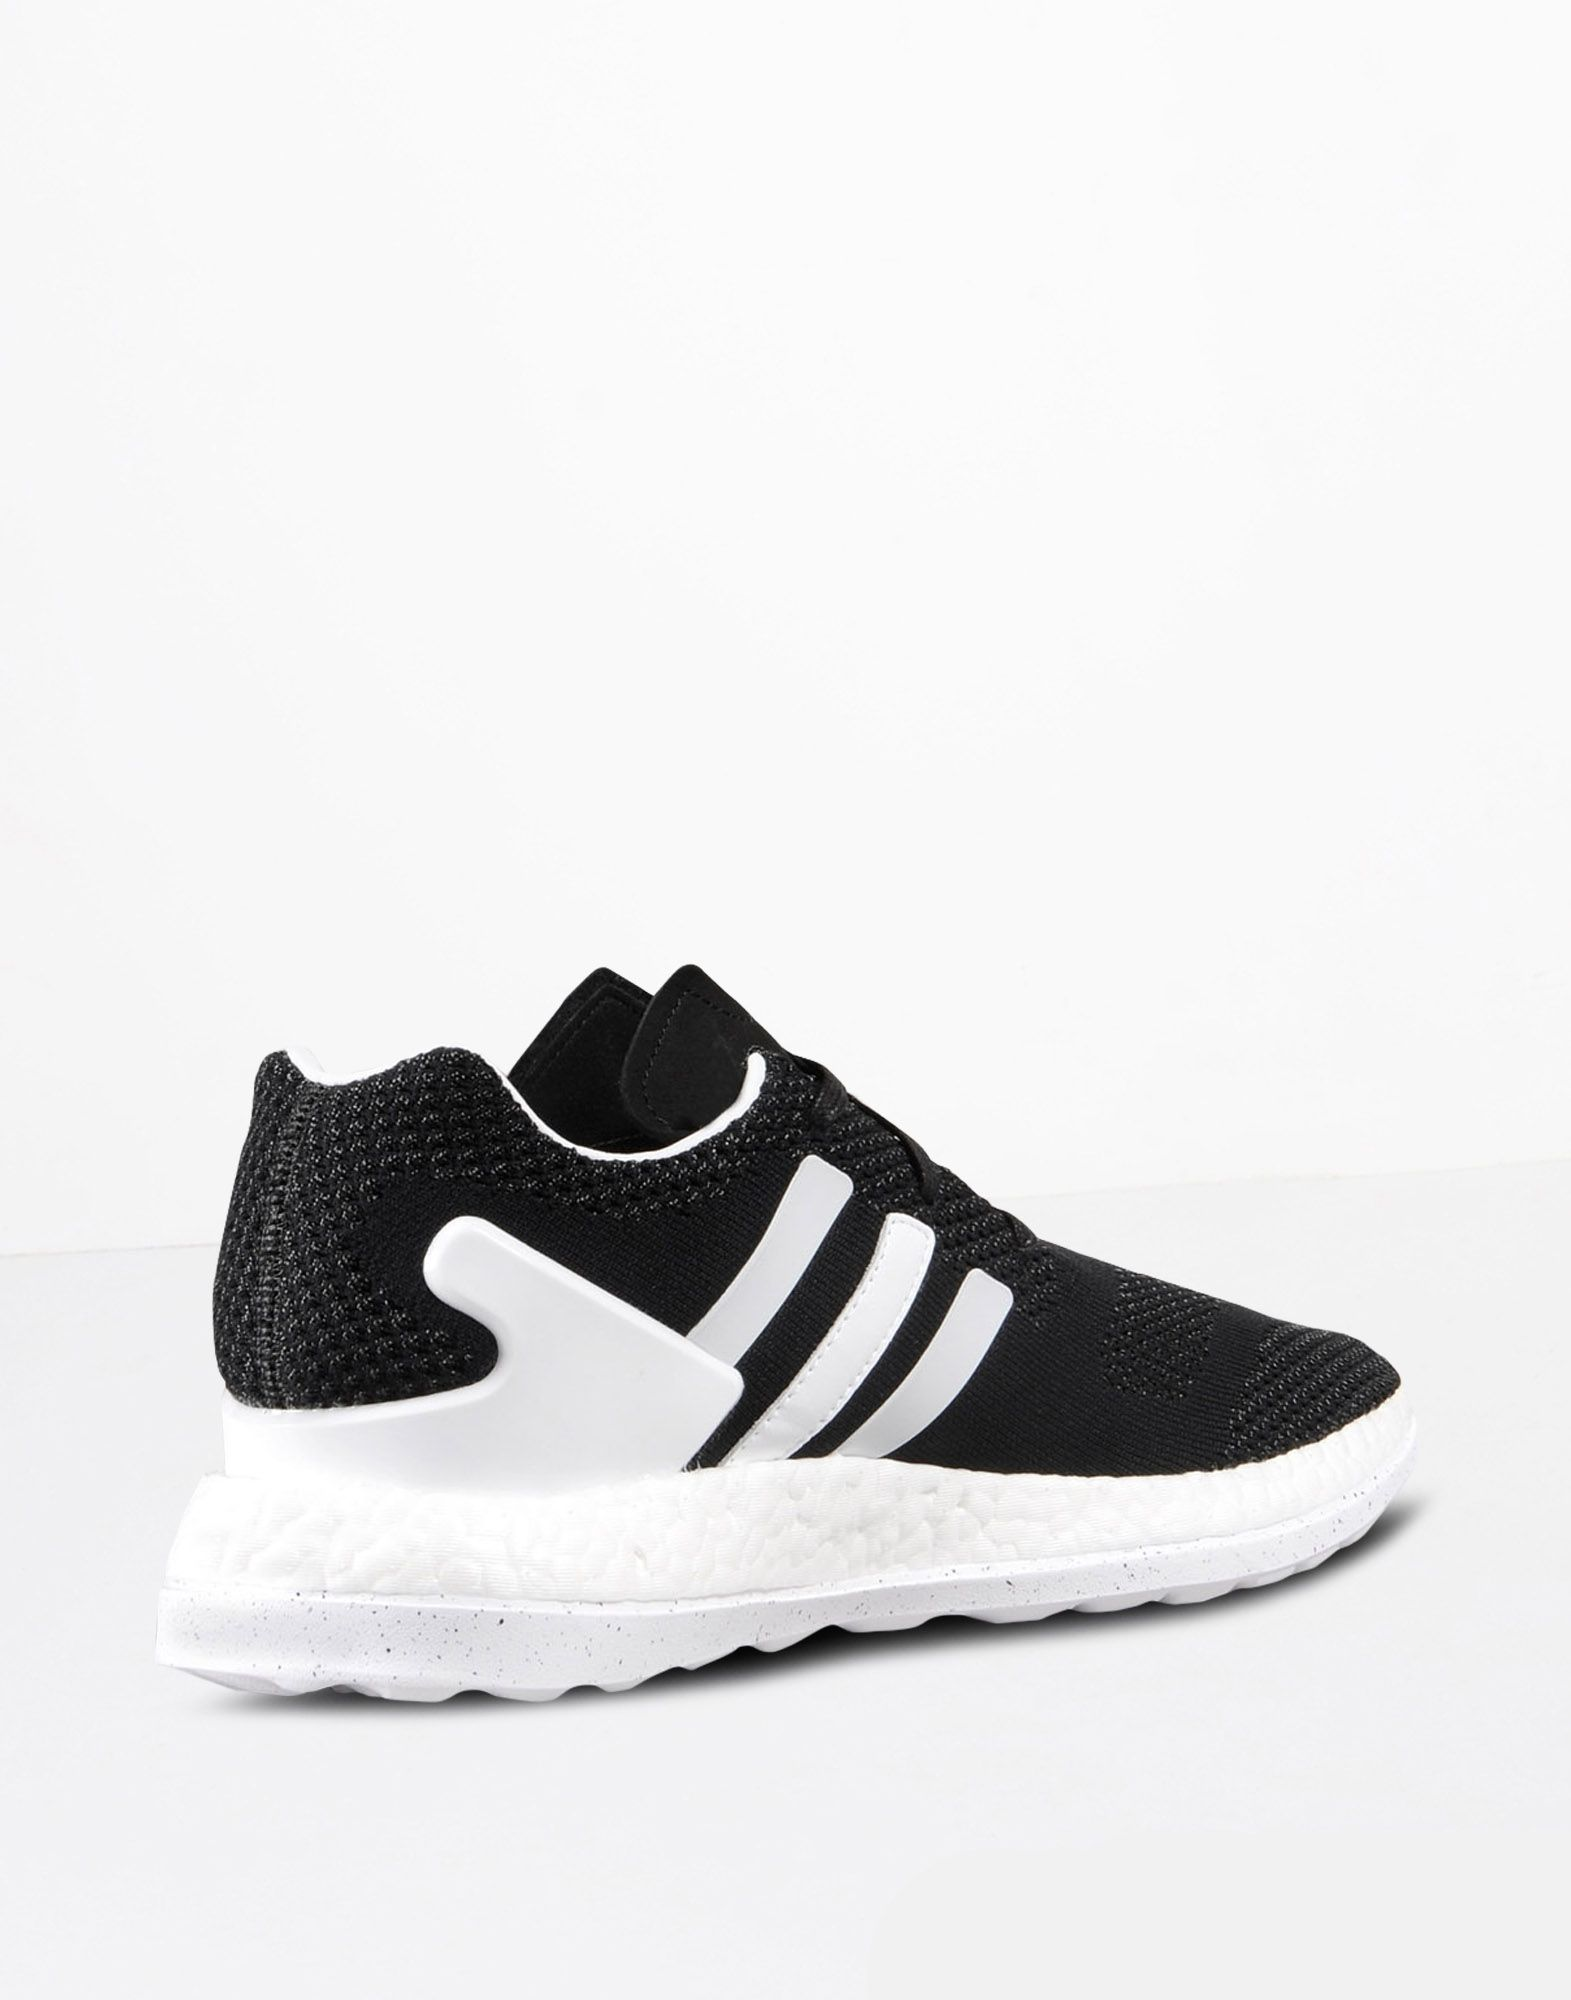 e77d550aebdc5 ... Y-3 Y-3 PURE BOOST ZG KNIT Sneakers Man ...